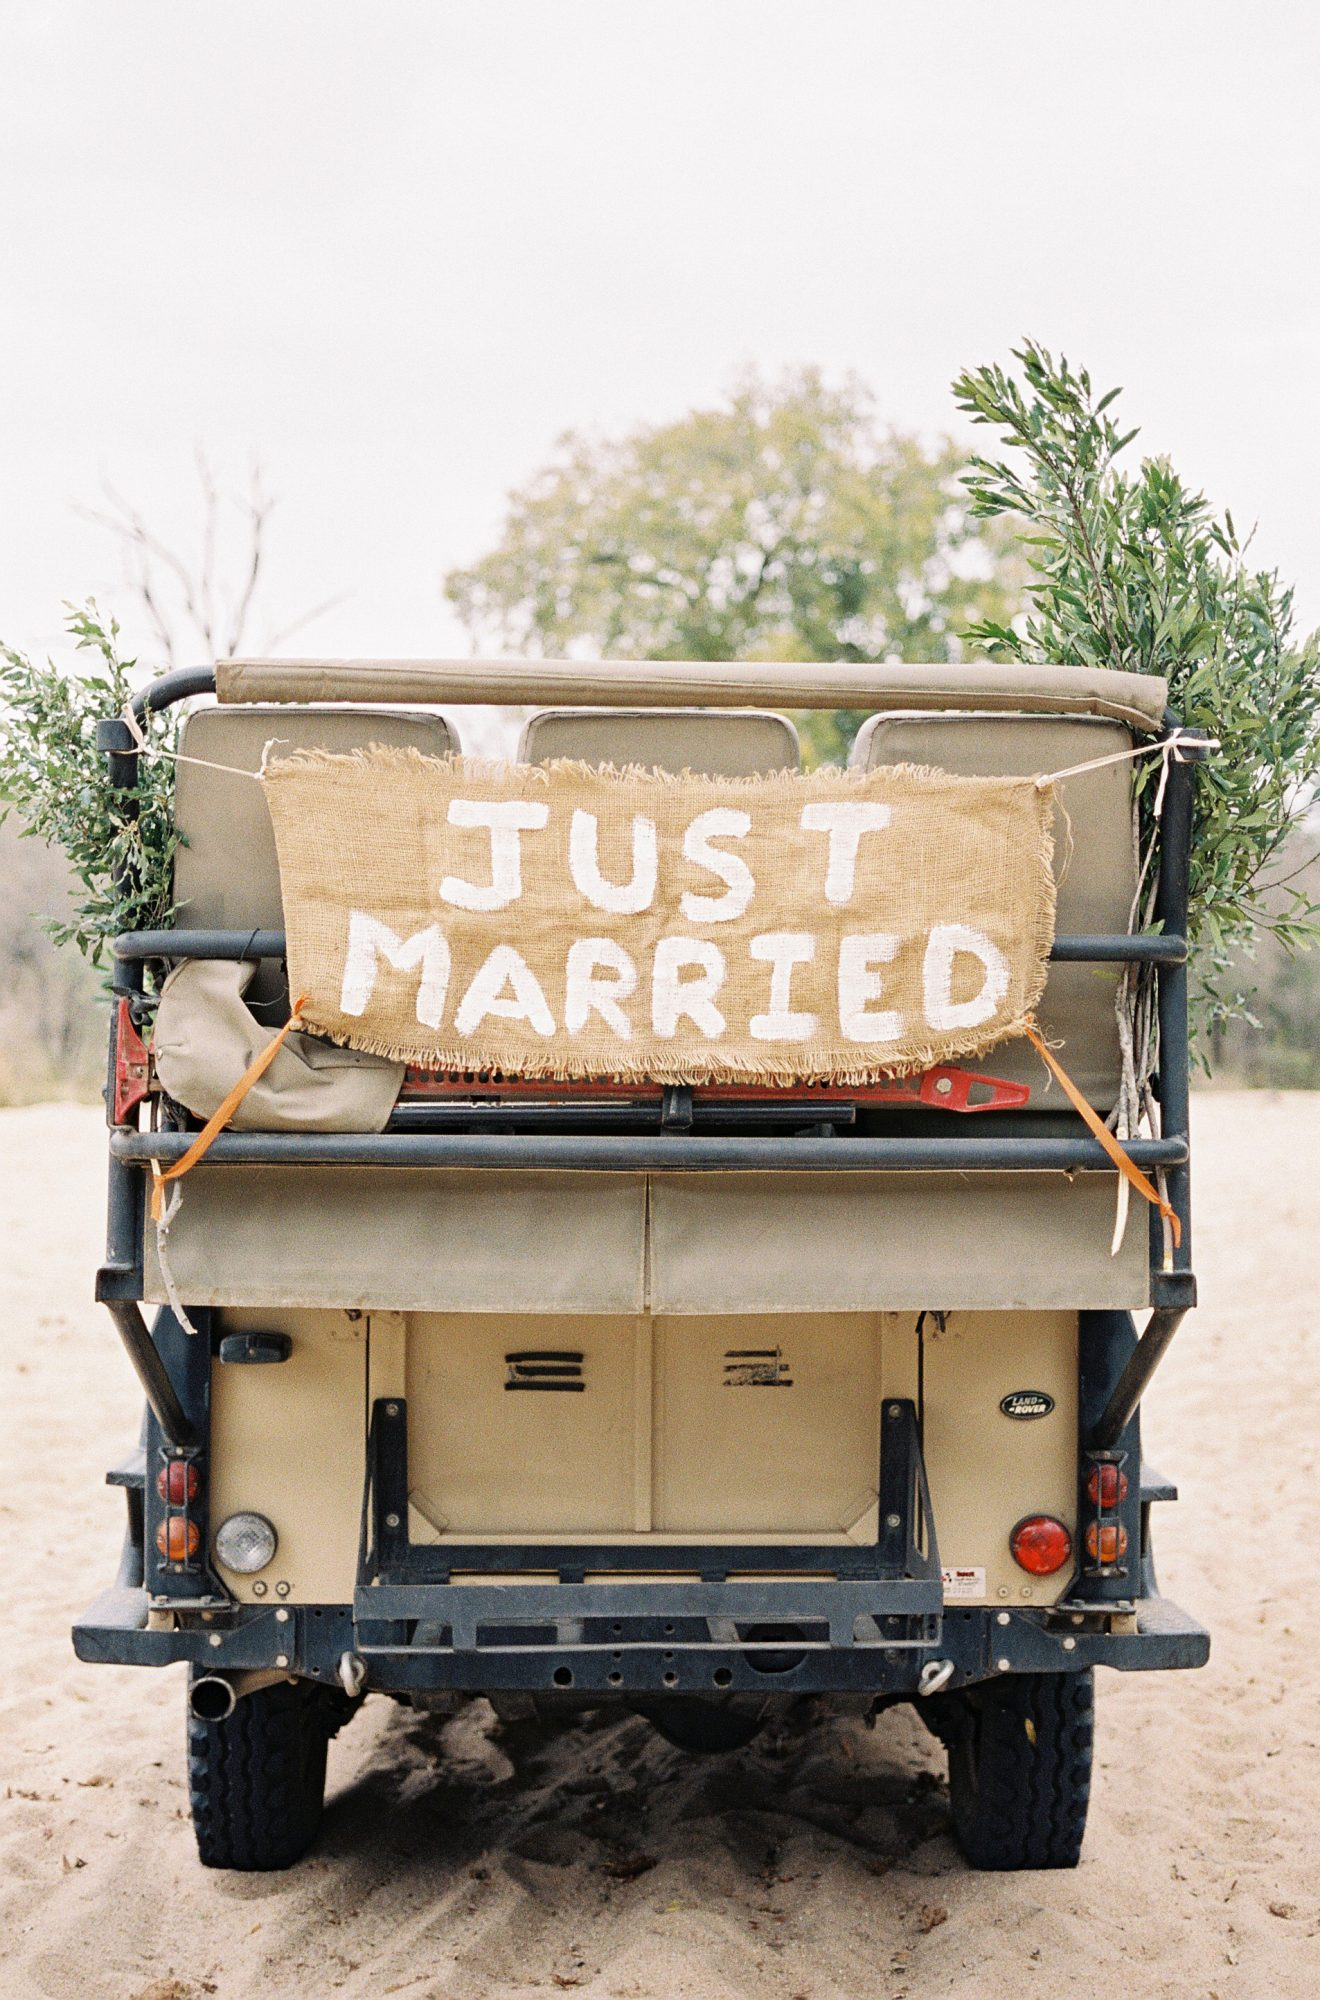 just married sign off road vehicle jeep